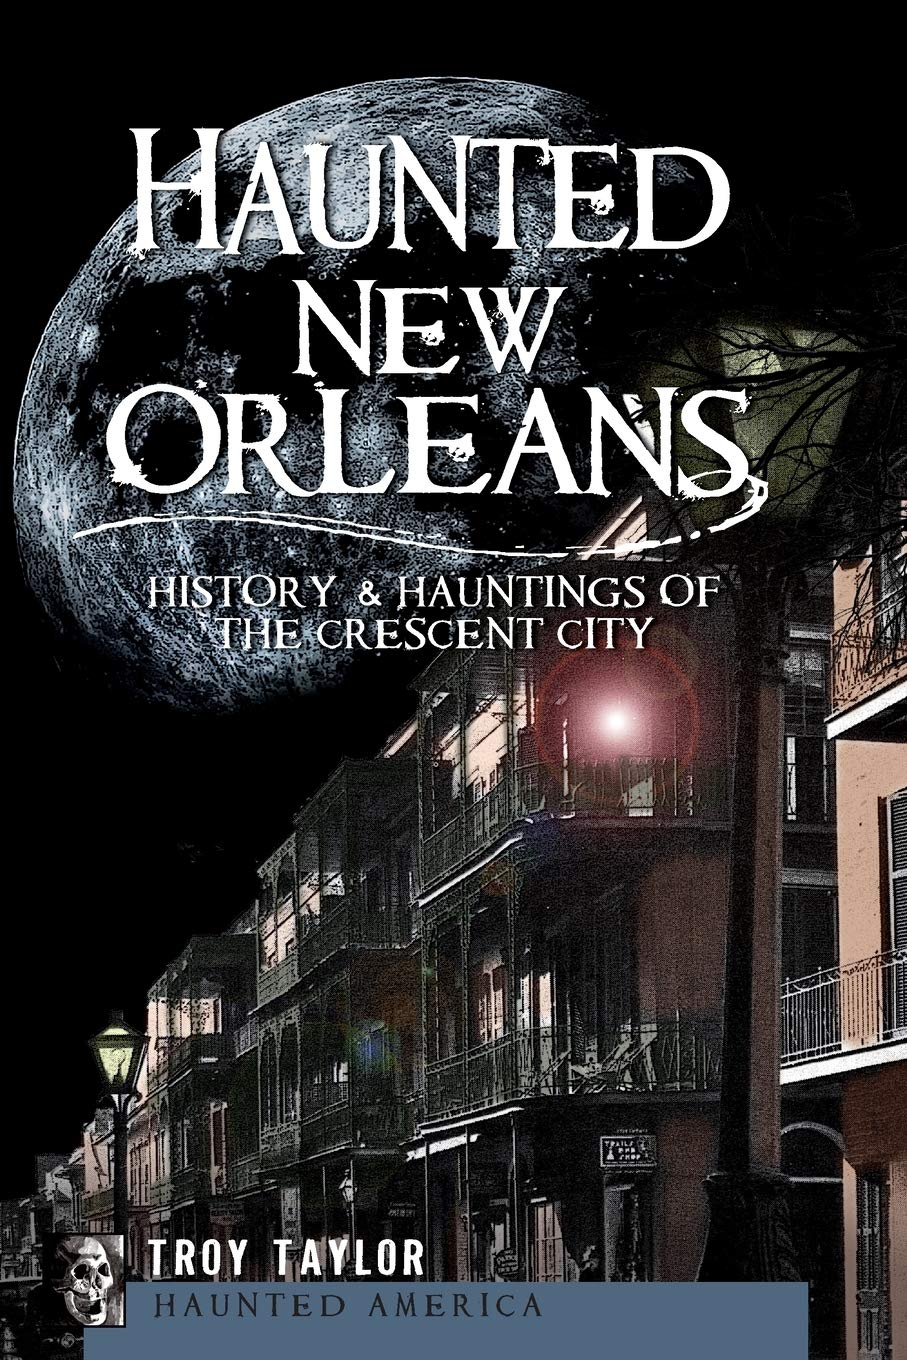 Amazon Com Haunted New Orleans History Hauntings Of The Crescent City Haunted America 9781596299443 Taylor Troy Books